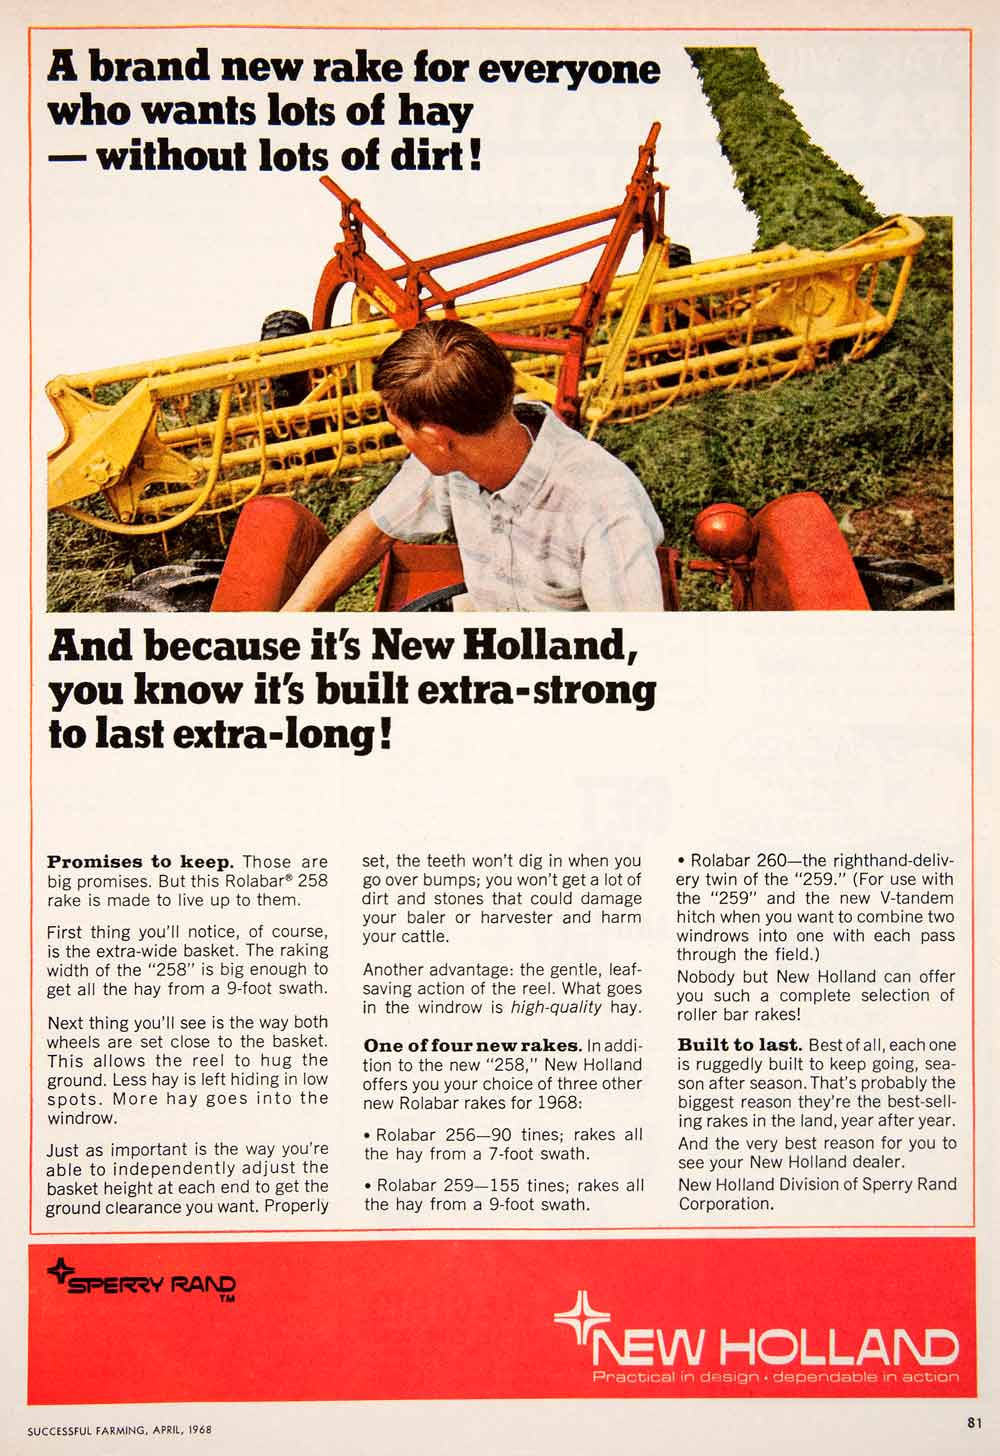 1968 Ad New Holland Sperry Rand Hay Rolabar 258 Farming Machine SF1